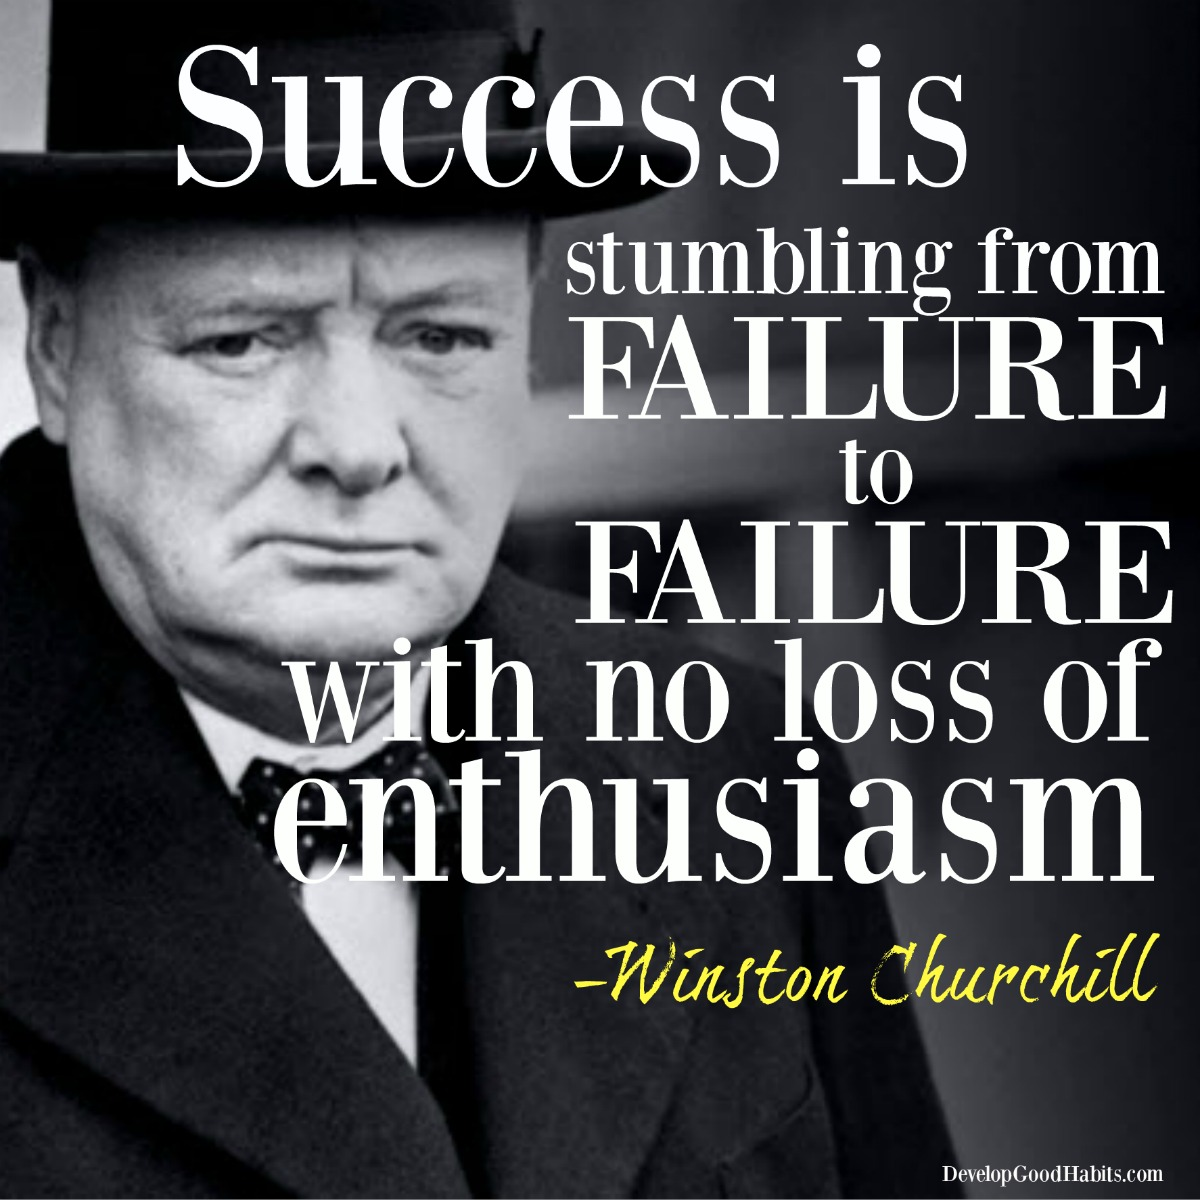 Quotes On Success And Failure: Success Is Stumbling From Failure To Failure With No Loss